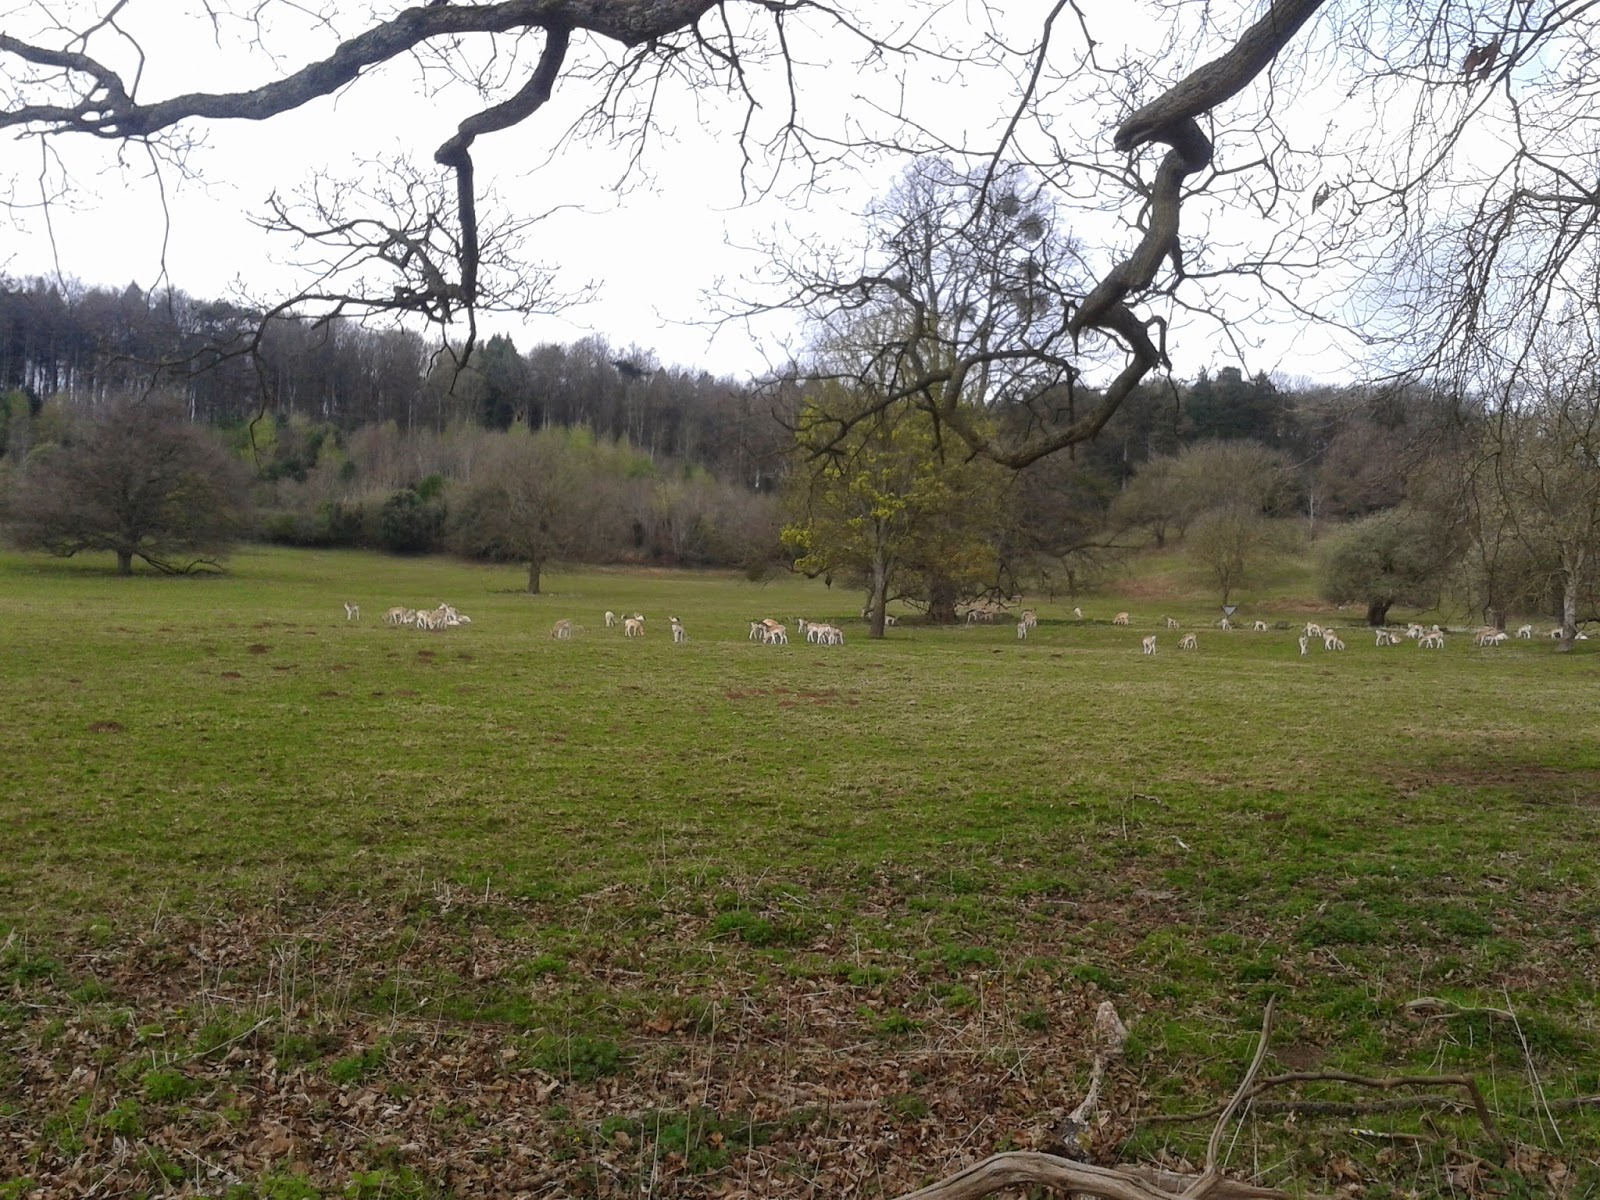 Deer park at Ashton Court, Bristol